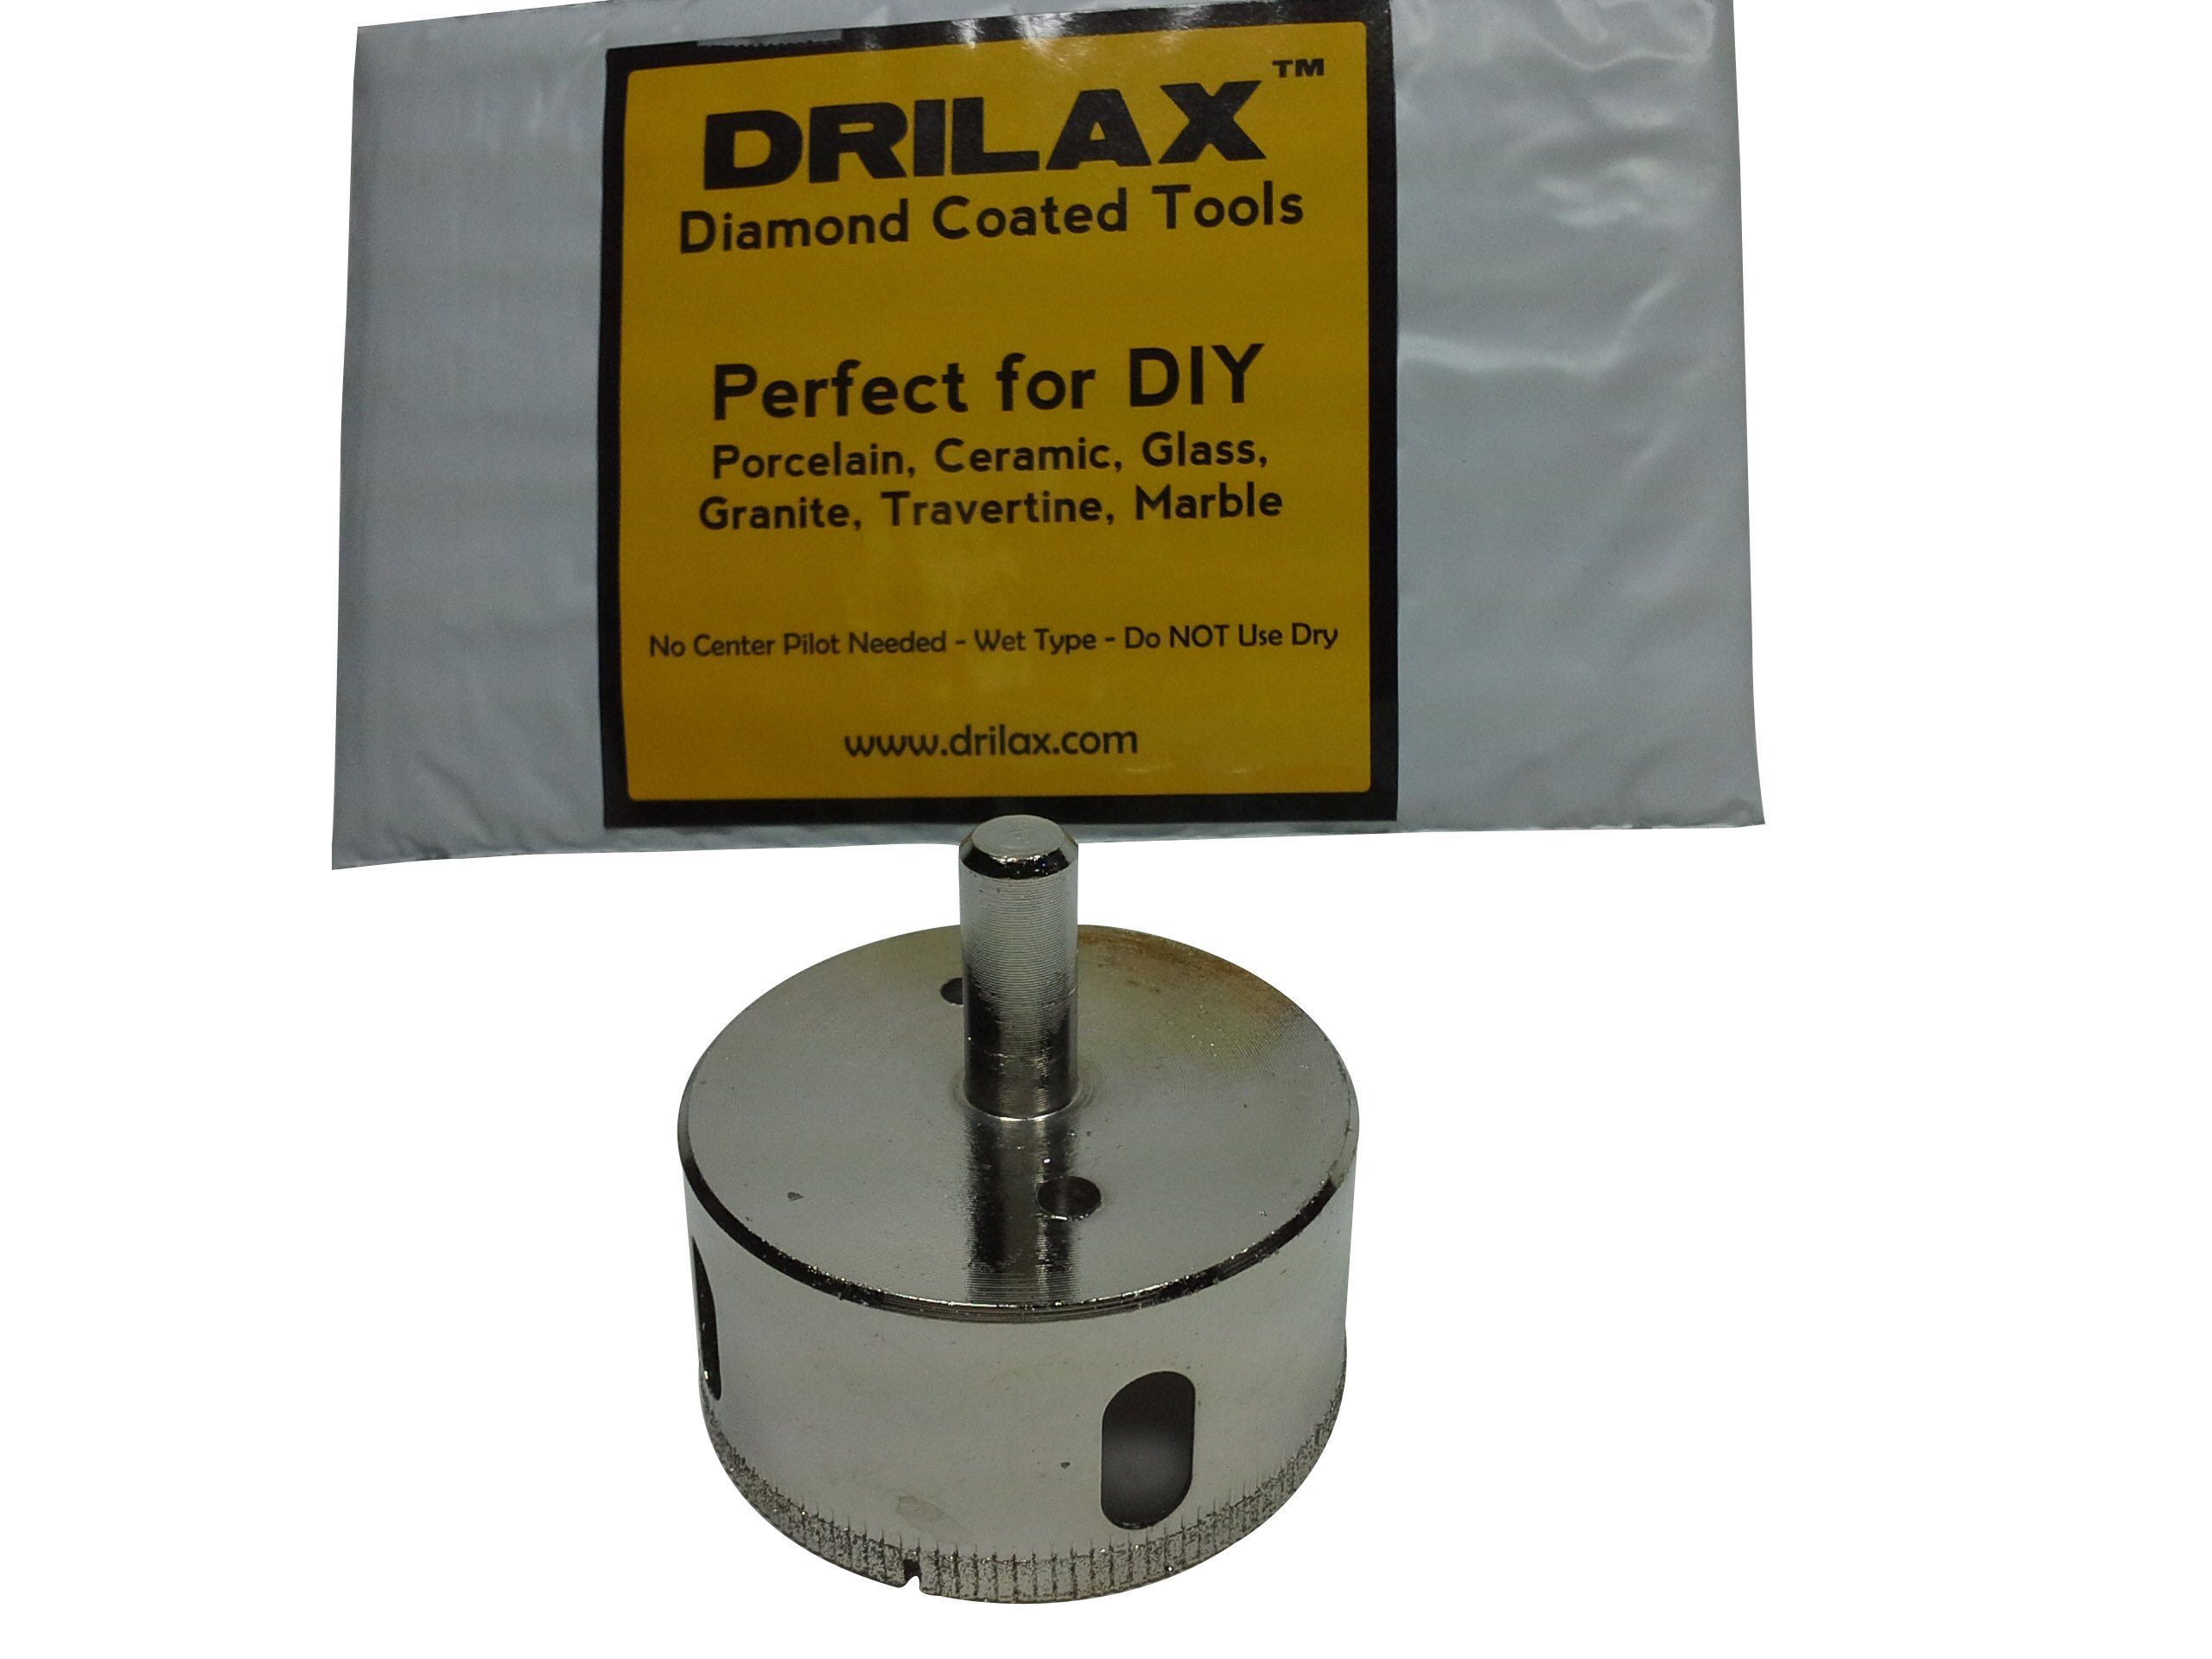 """Drilax 2 3/8 Inch Diamond Hole Saw Drill Bit Tiles, Glass, Fish Tanks, Marble, Granite Countertop, Ceramic, Porcelain, Coated Core Bits Holesaw DIY Kitchen, Bathroom, Shower, Faucet Installation Size 2 3/8"""""""